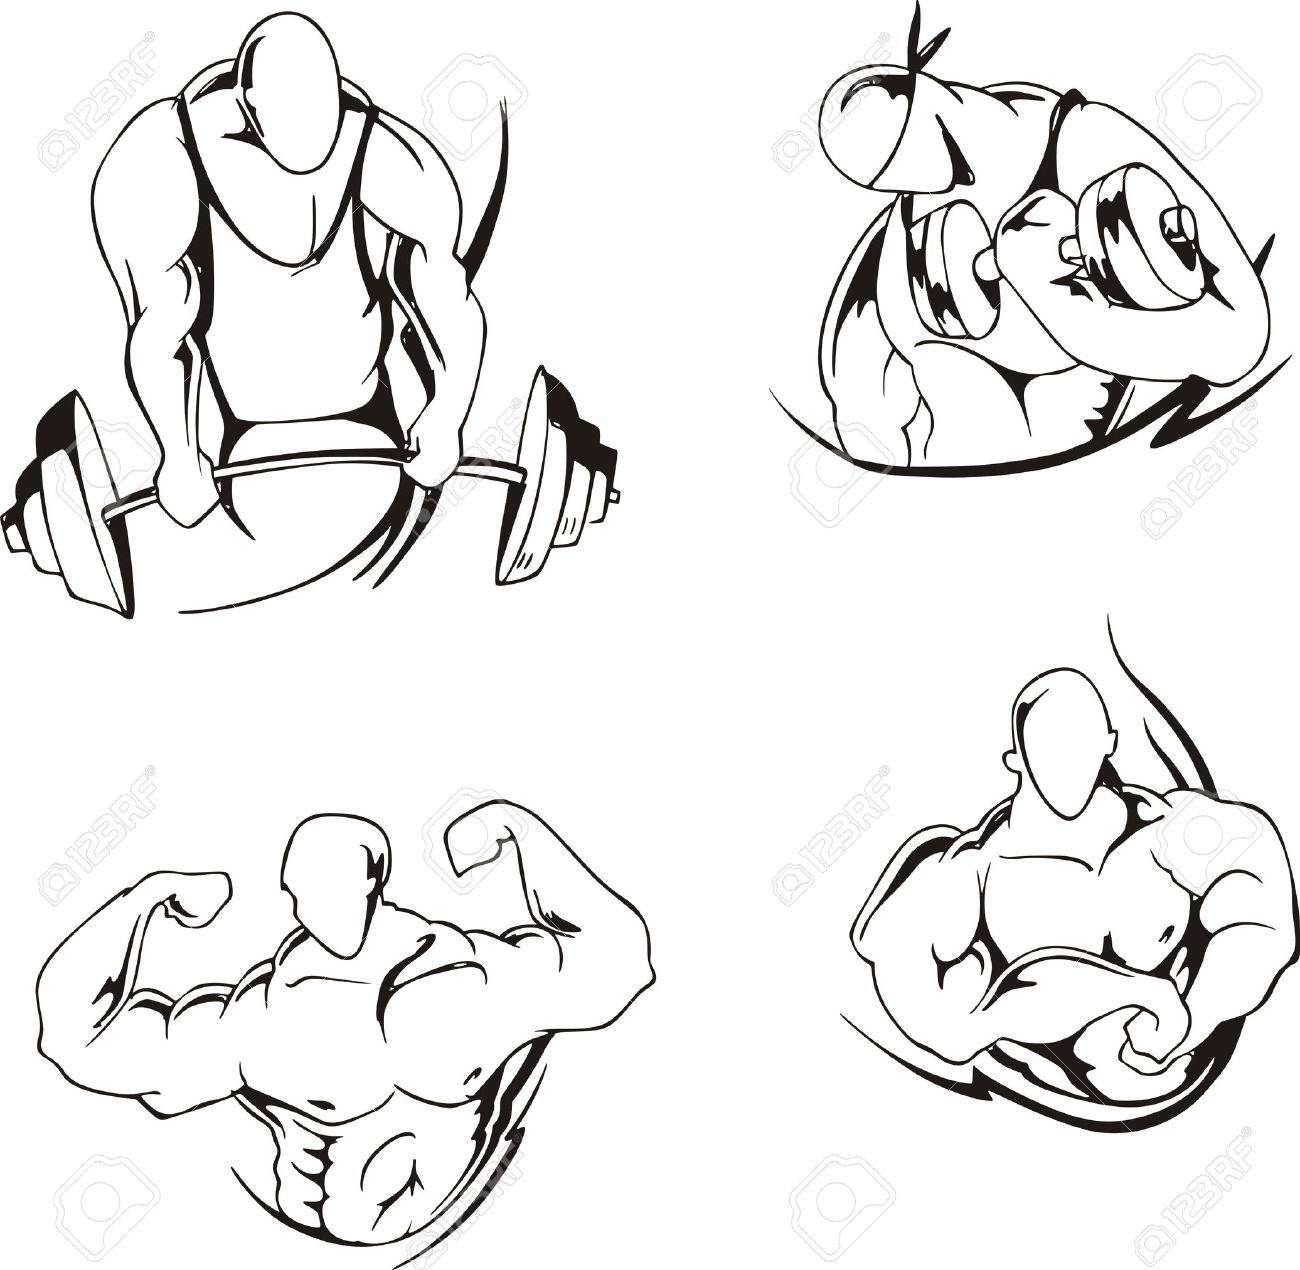 1300x1270 Weight Lifting And Bodybuilding Set Of Black And White